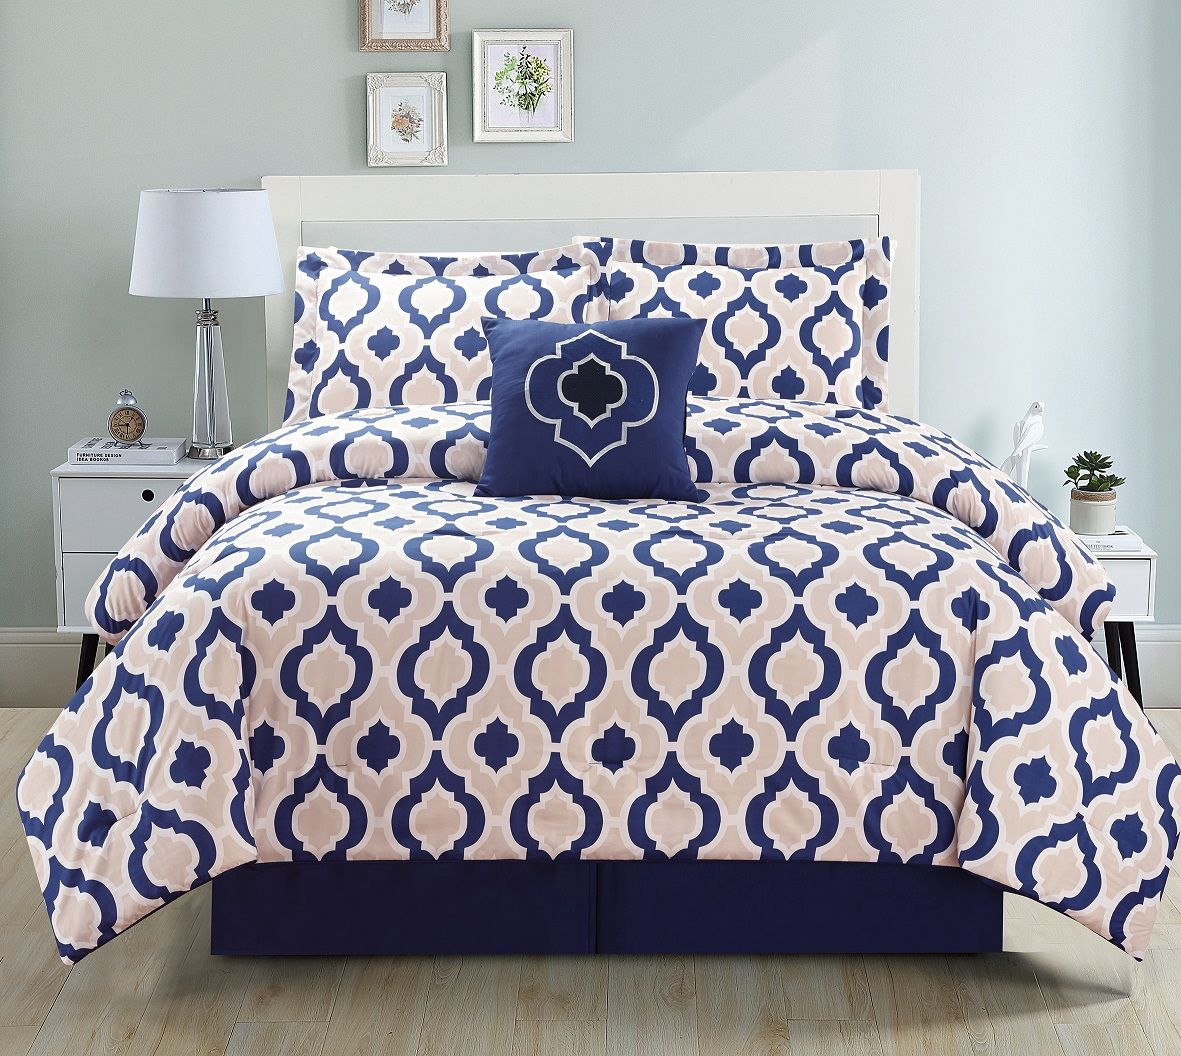 5 Piece Moroccan Navy Comforter Set